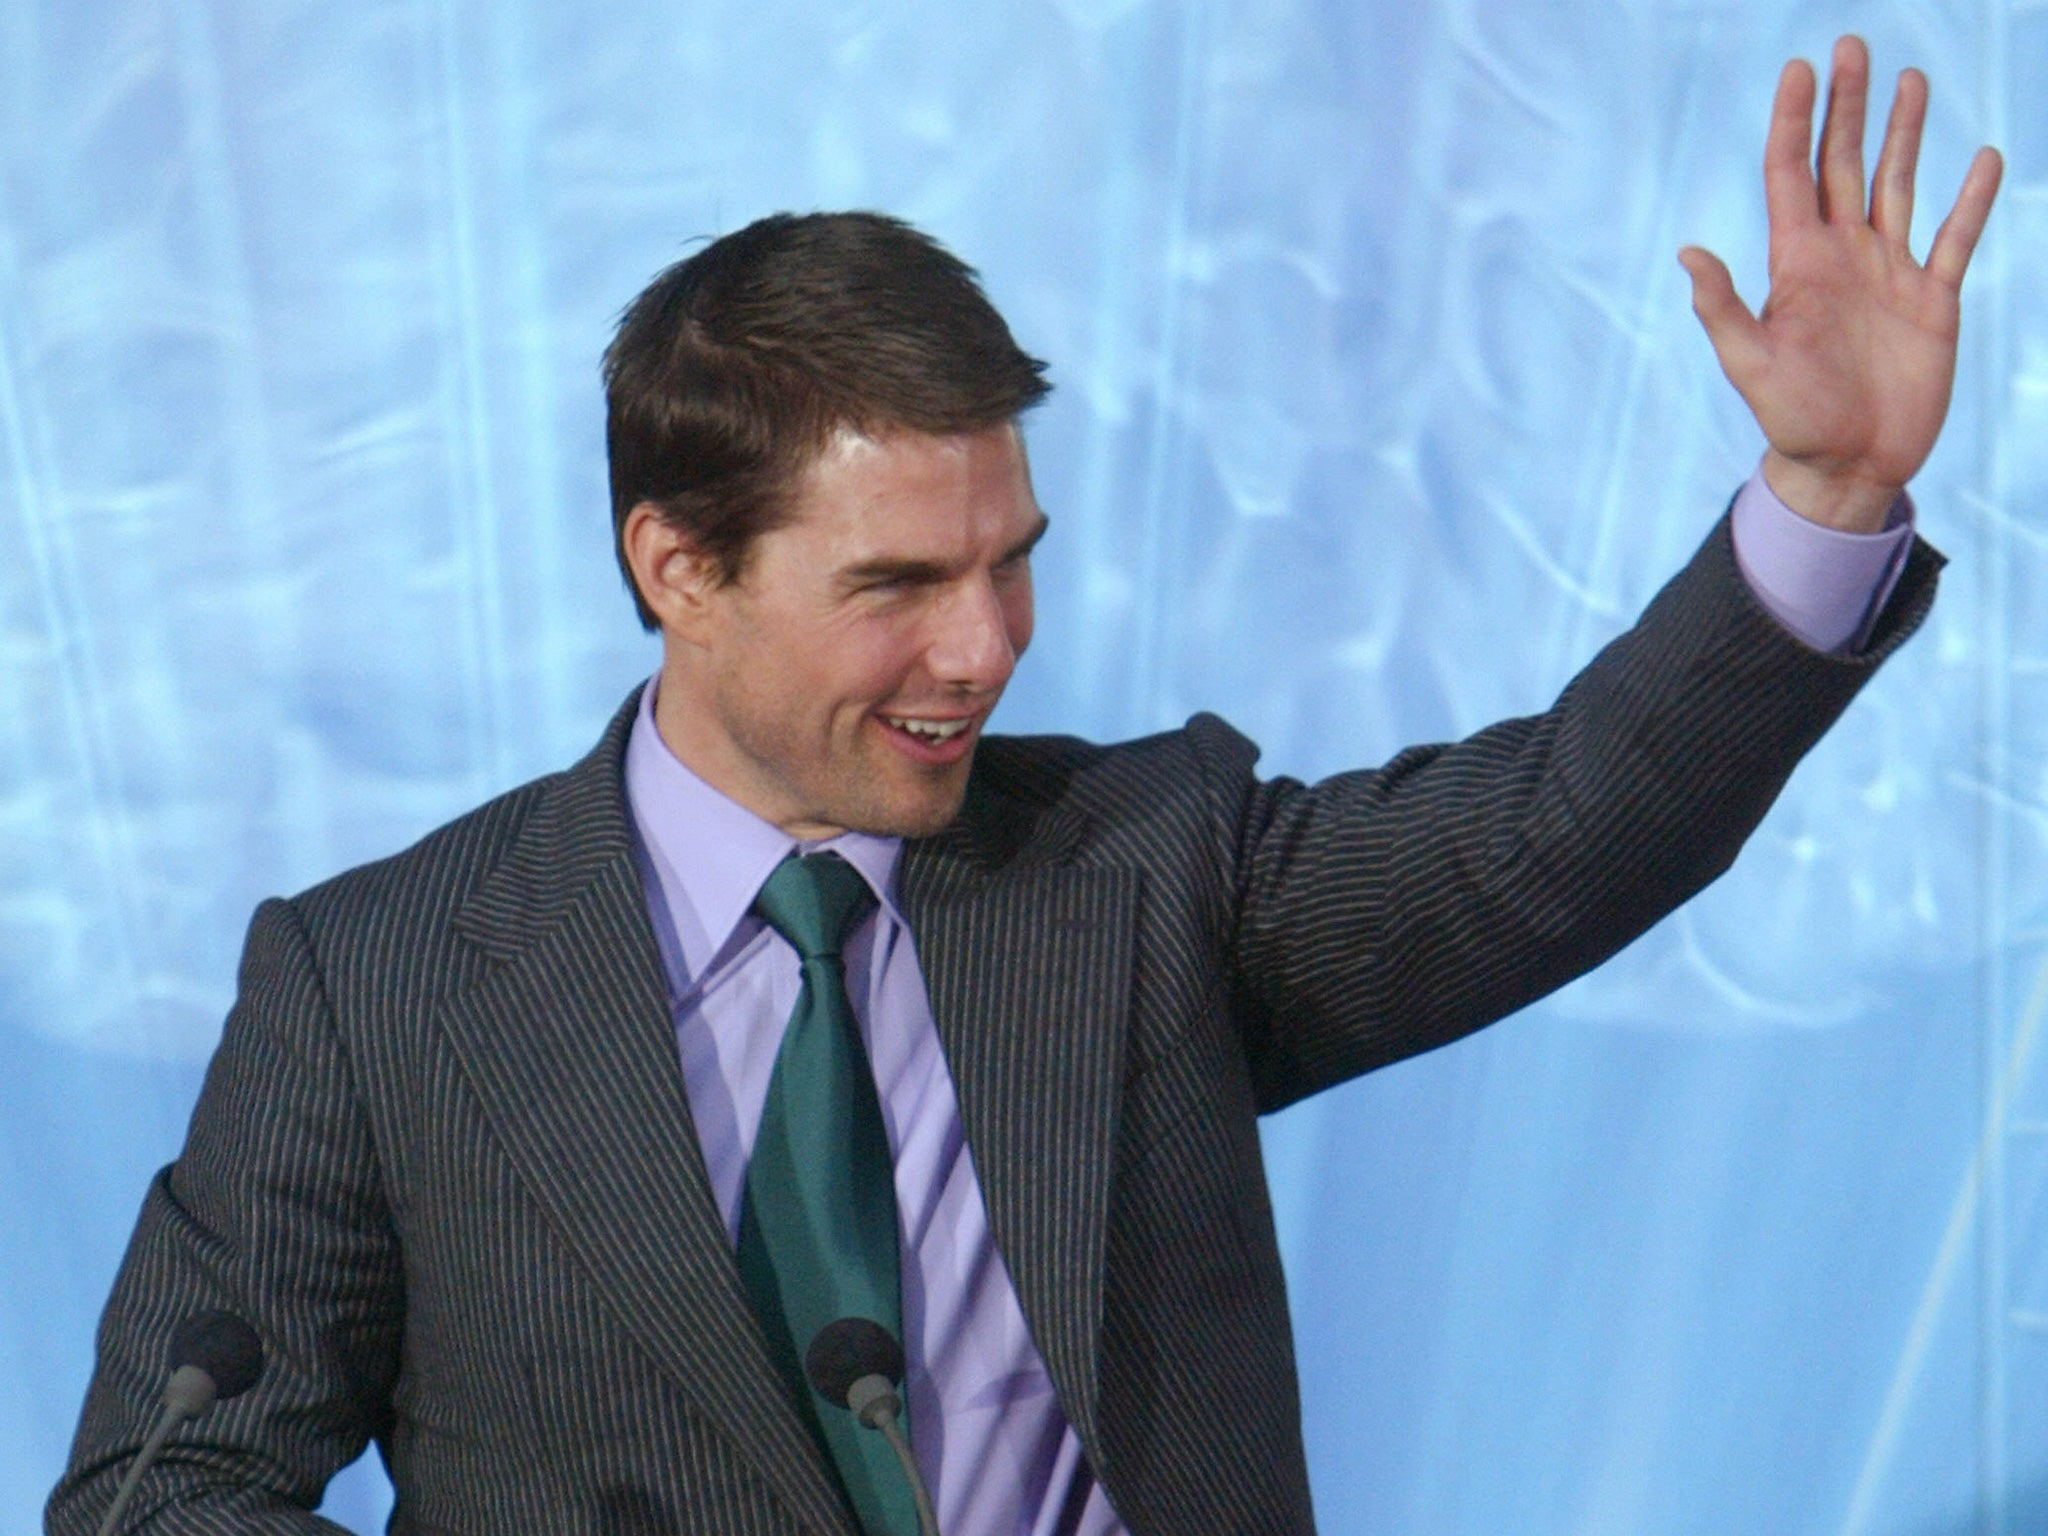 Bloody Hell Tom Cruise: Scientologist, You're Quite Odd